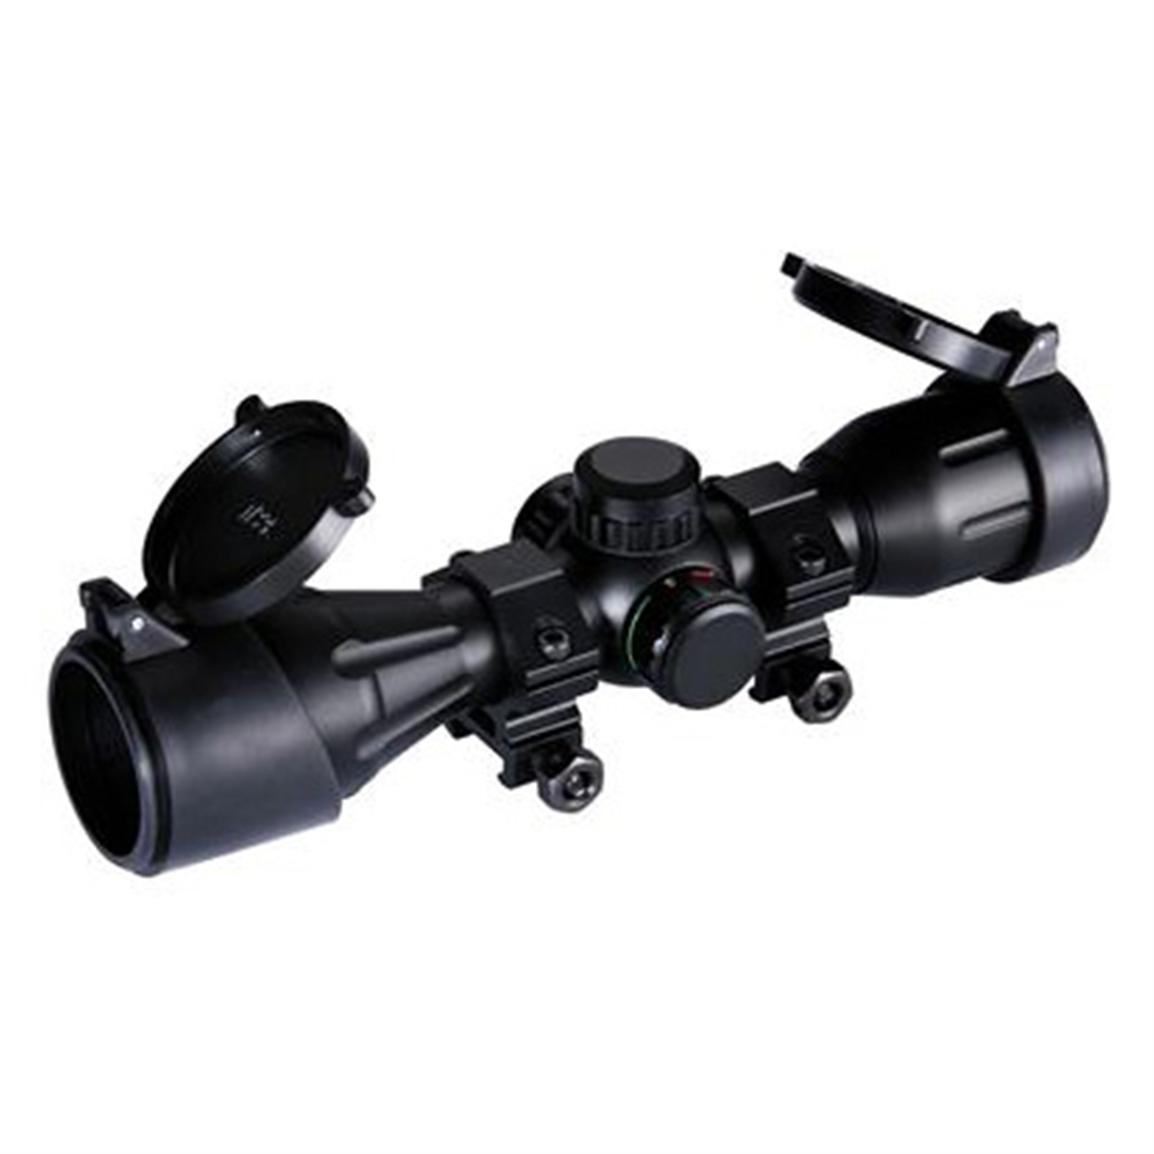 Carbon Express® 1.5-5x32mm Illuminated Reticle Crossbow Scope